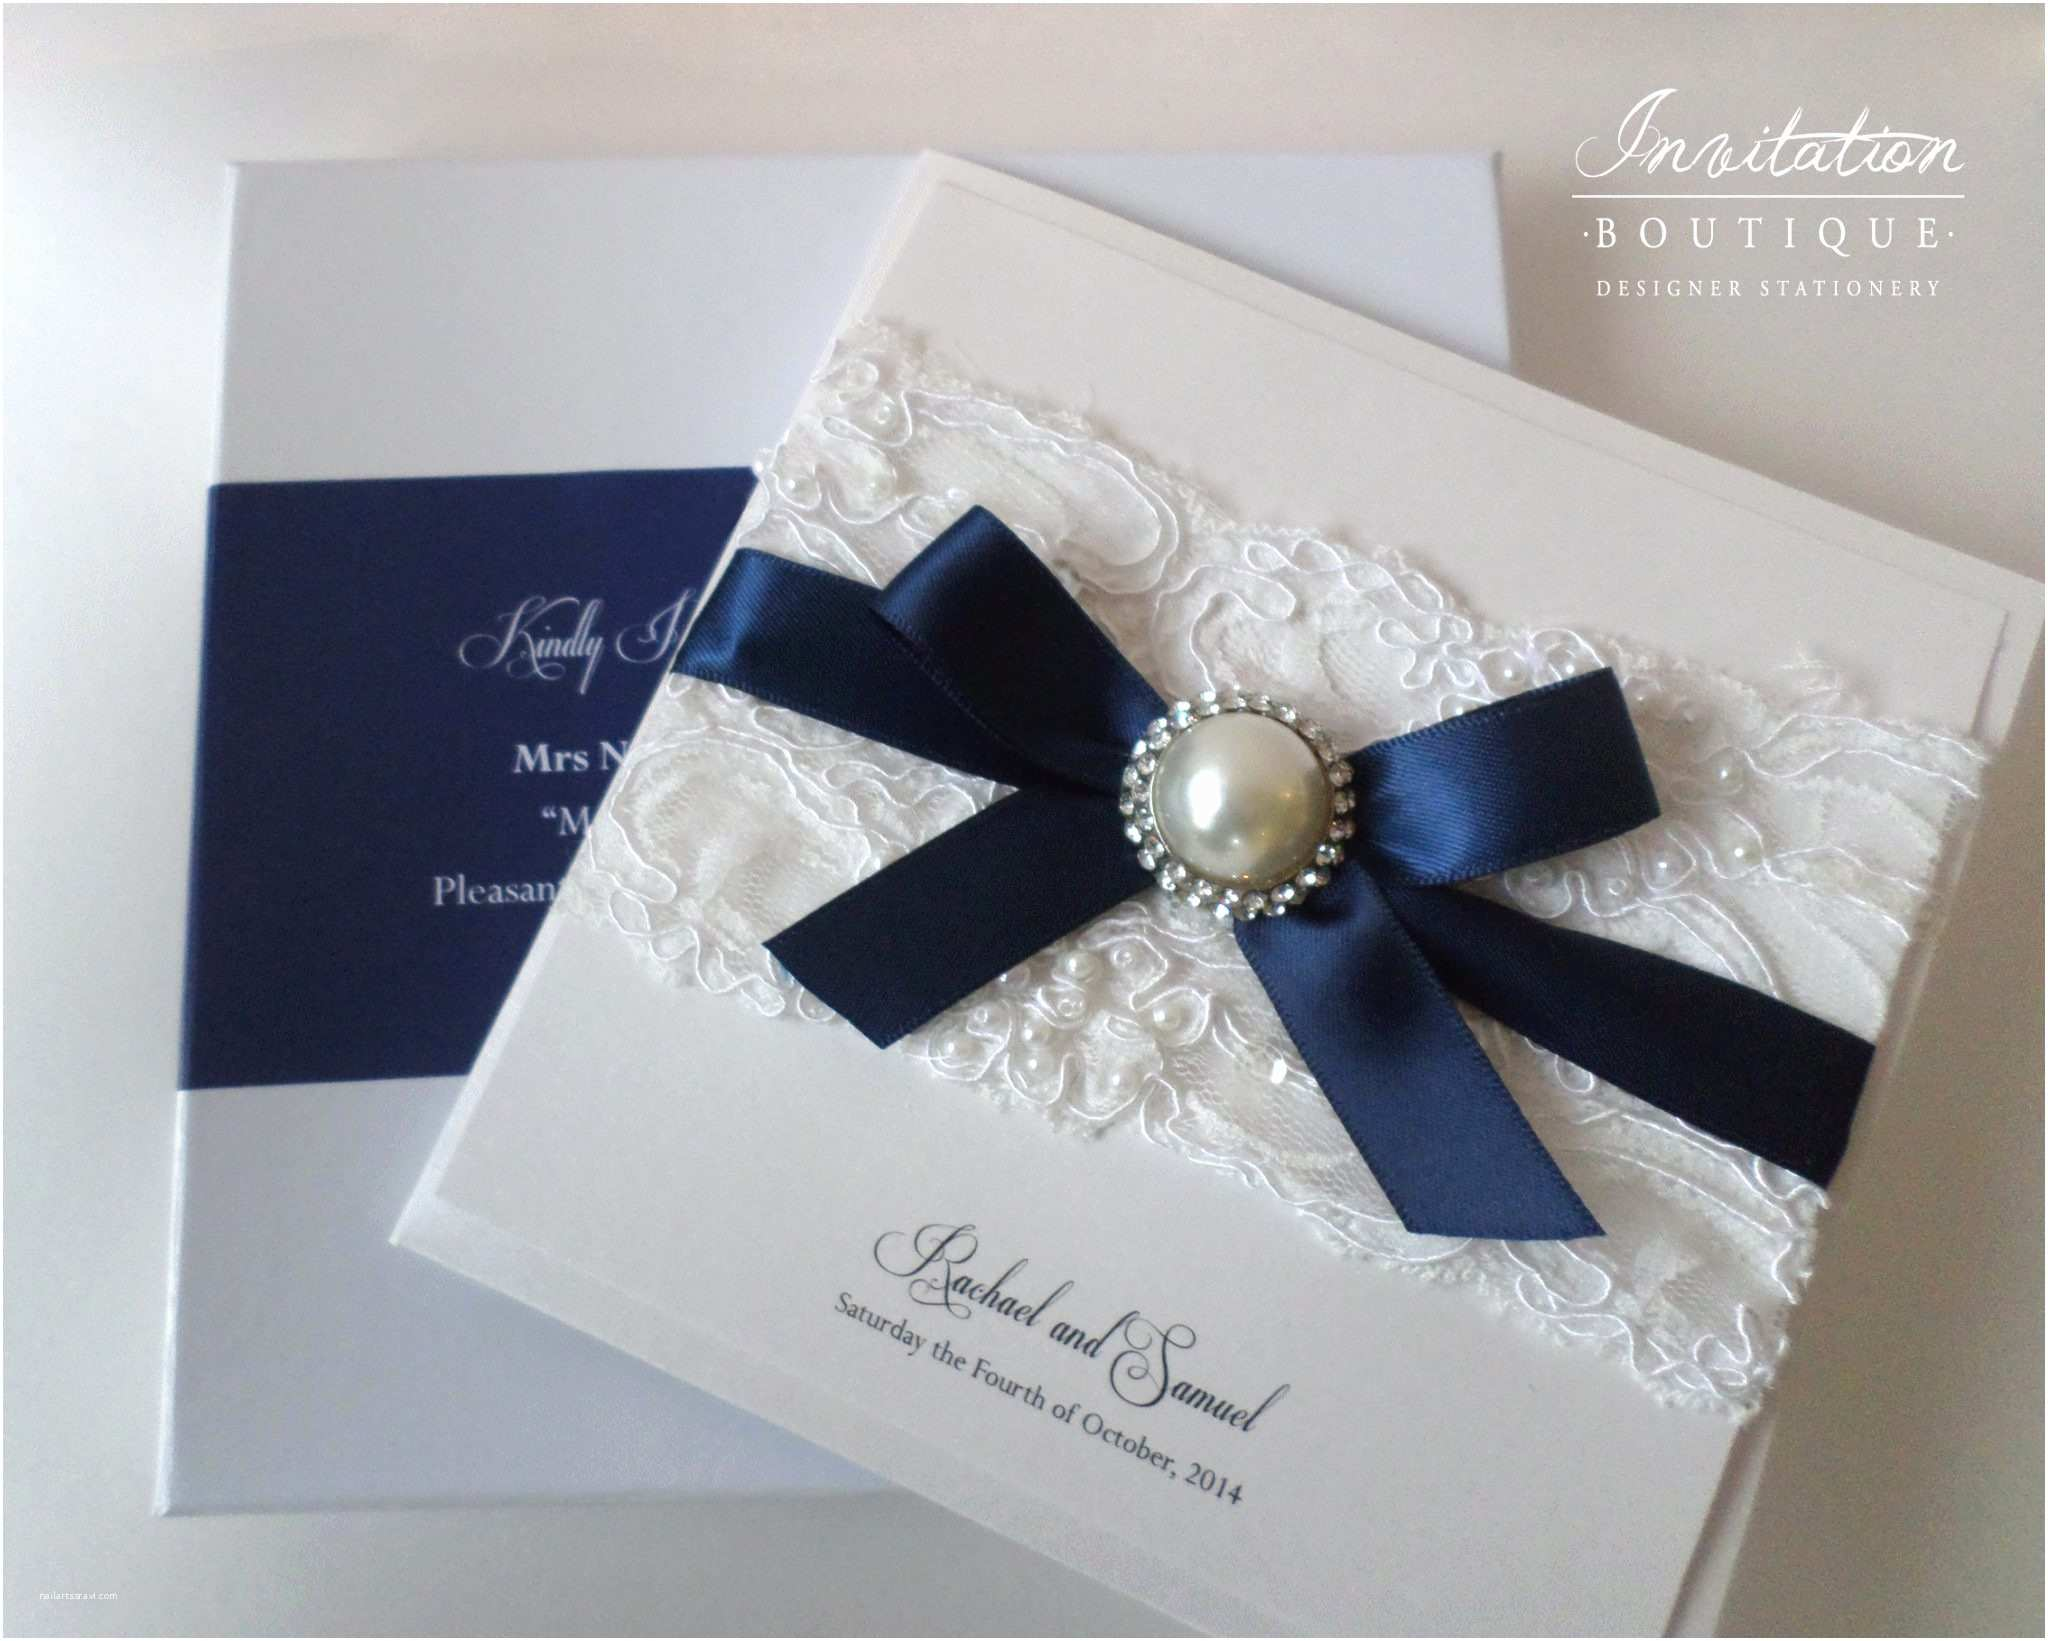 Wedding Invitation Boxes Cheap Designs Cheap Boxed Wedding Invitations Couture with Olive